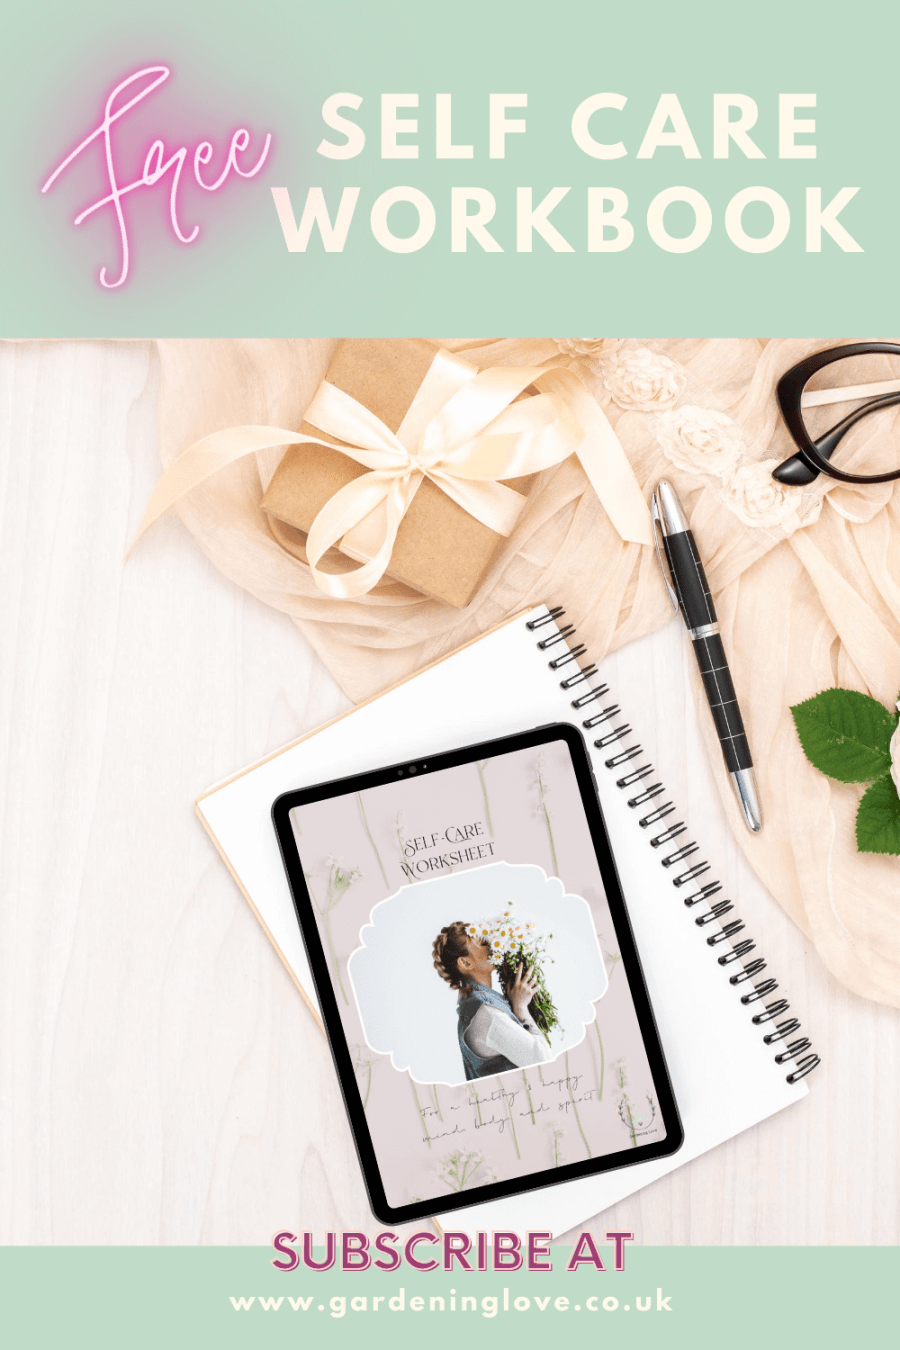 Free self care workbook, subscribe today for your free download link. #subscribe #free #opt-in #sign-up #newsletter #printable #digitaldownload